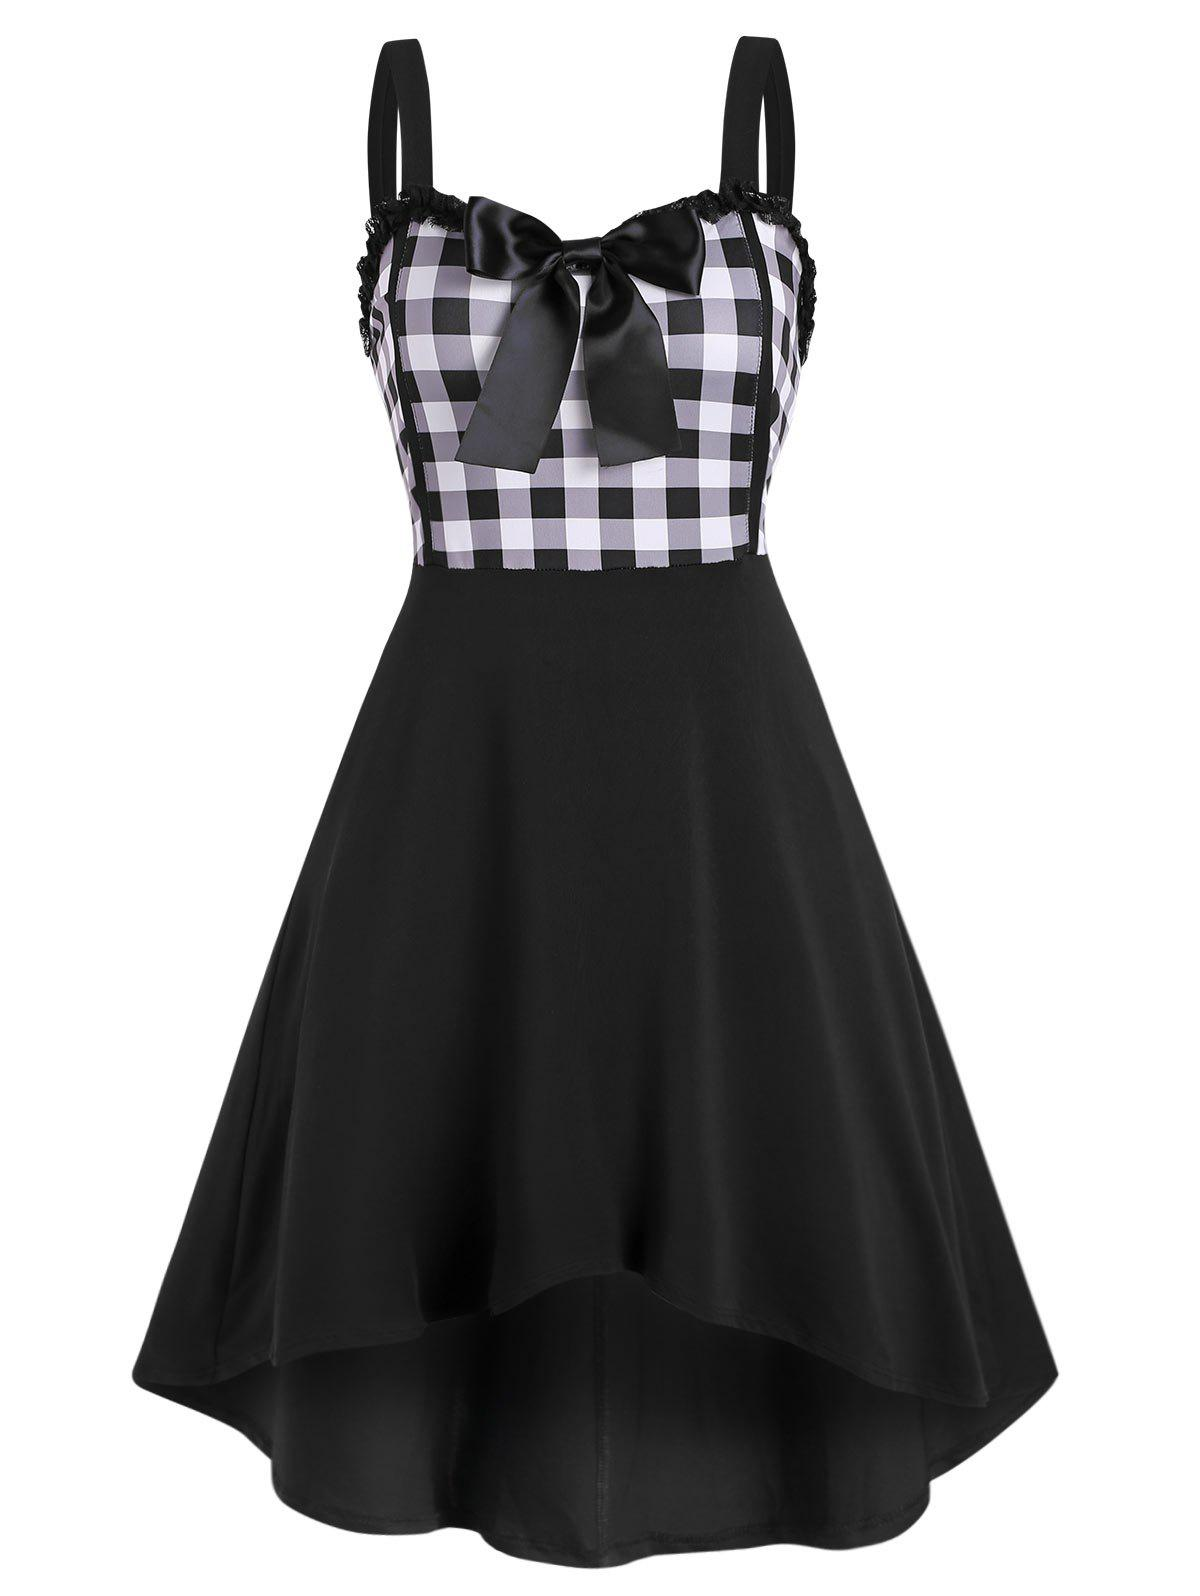 Online Lace Trim Bowknot Gingham Sleeveless High Low Dress